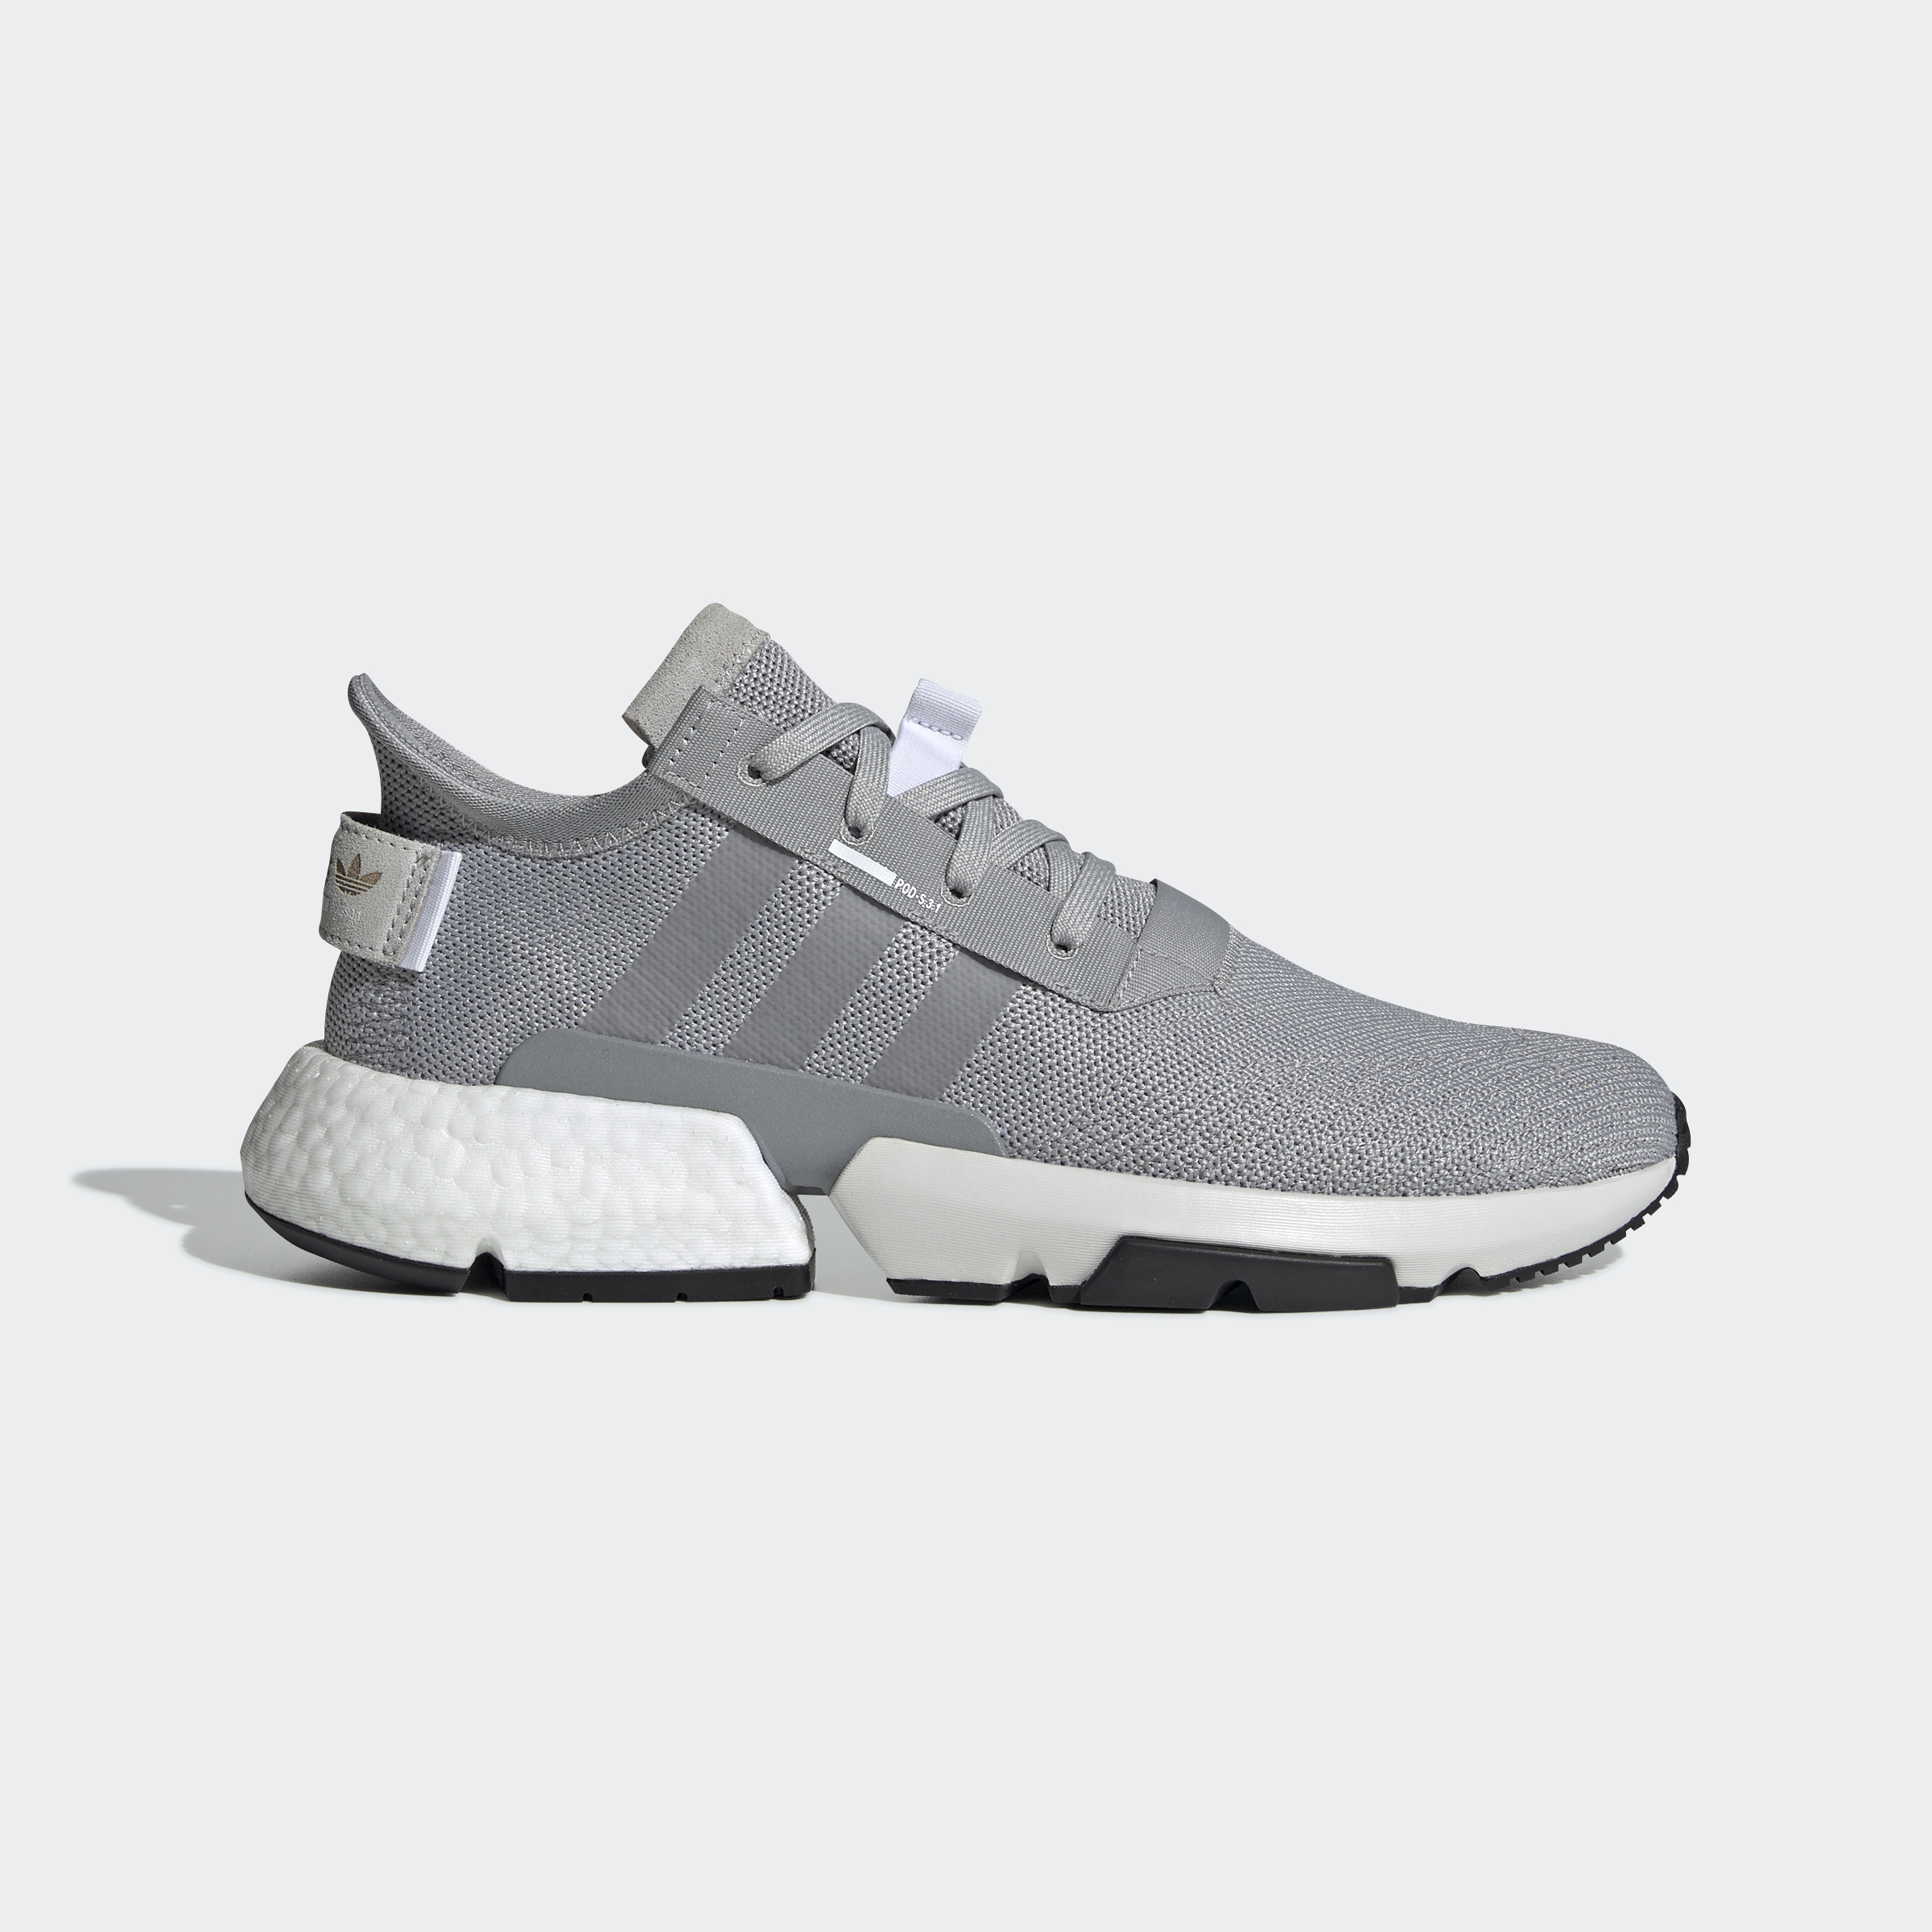 adidas-POD-S3-1-Shoes-Men-039-s-Athletic-amp-Sneakers miniature 18